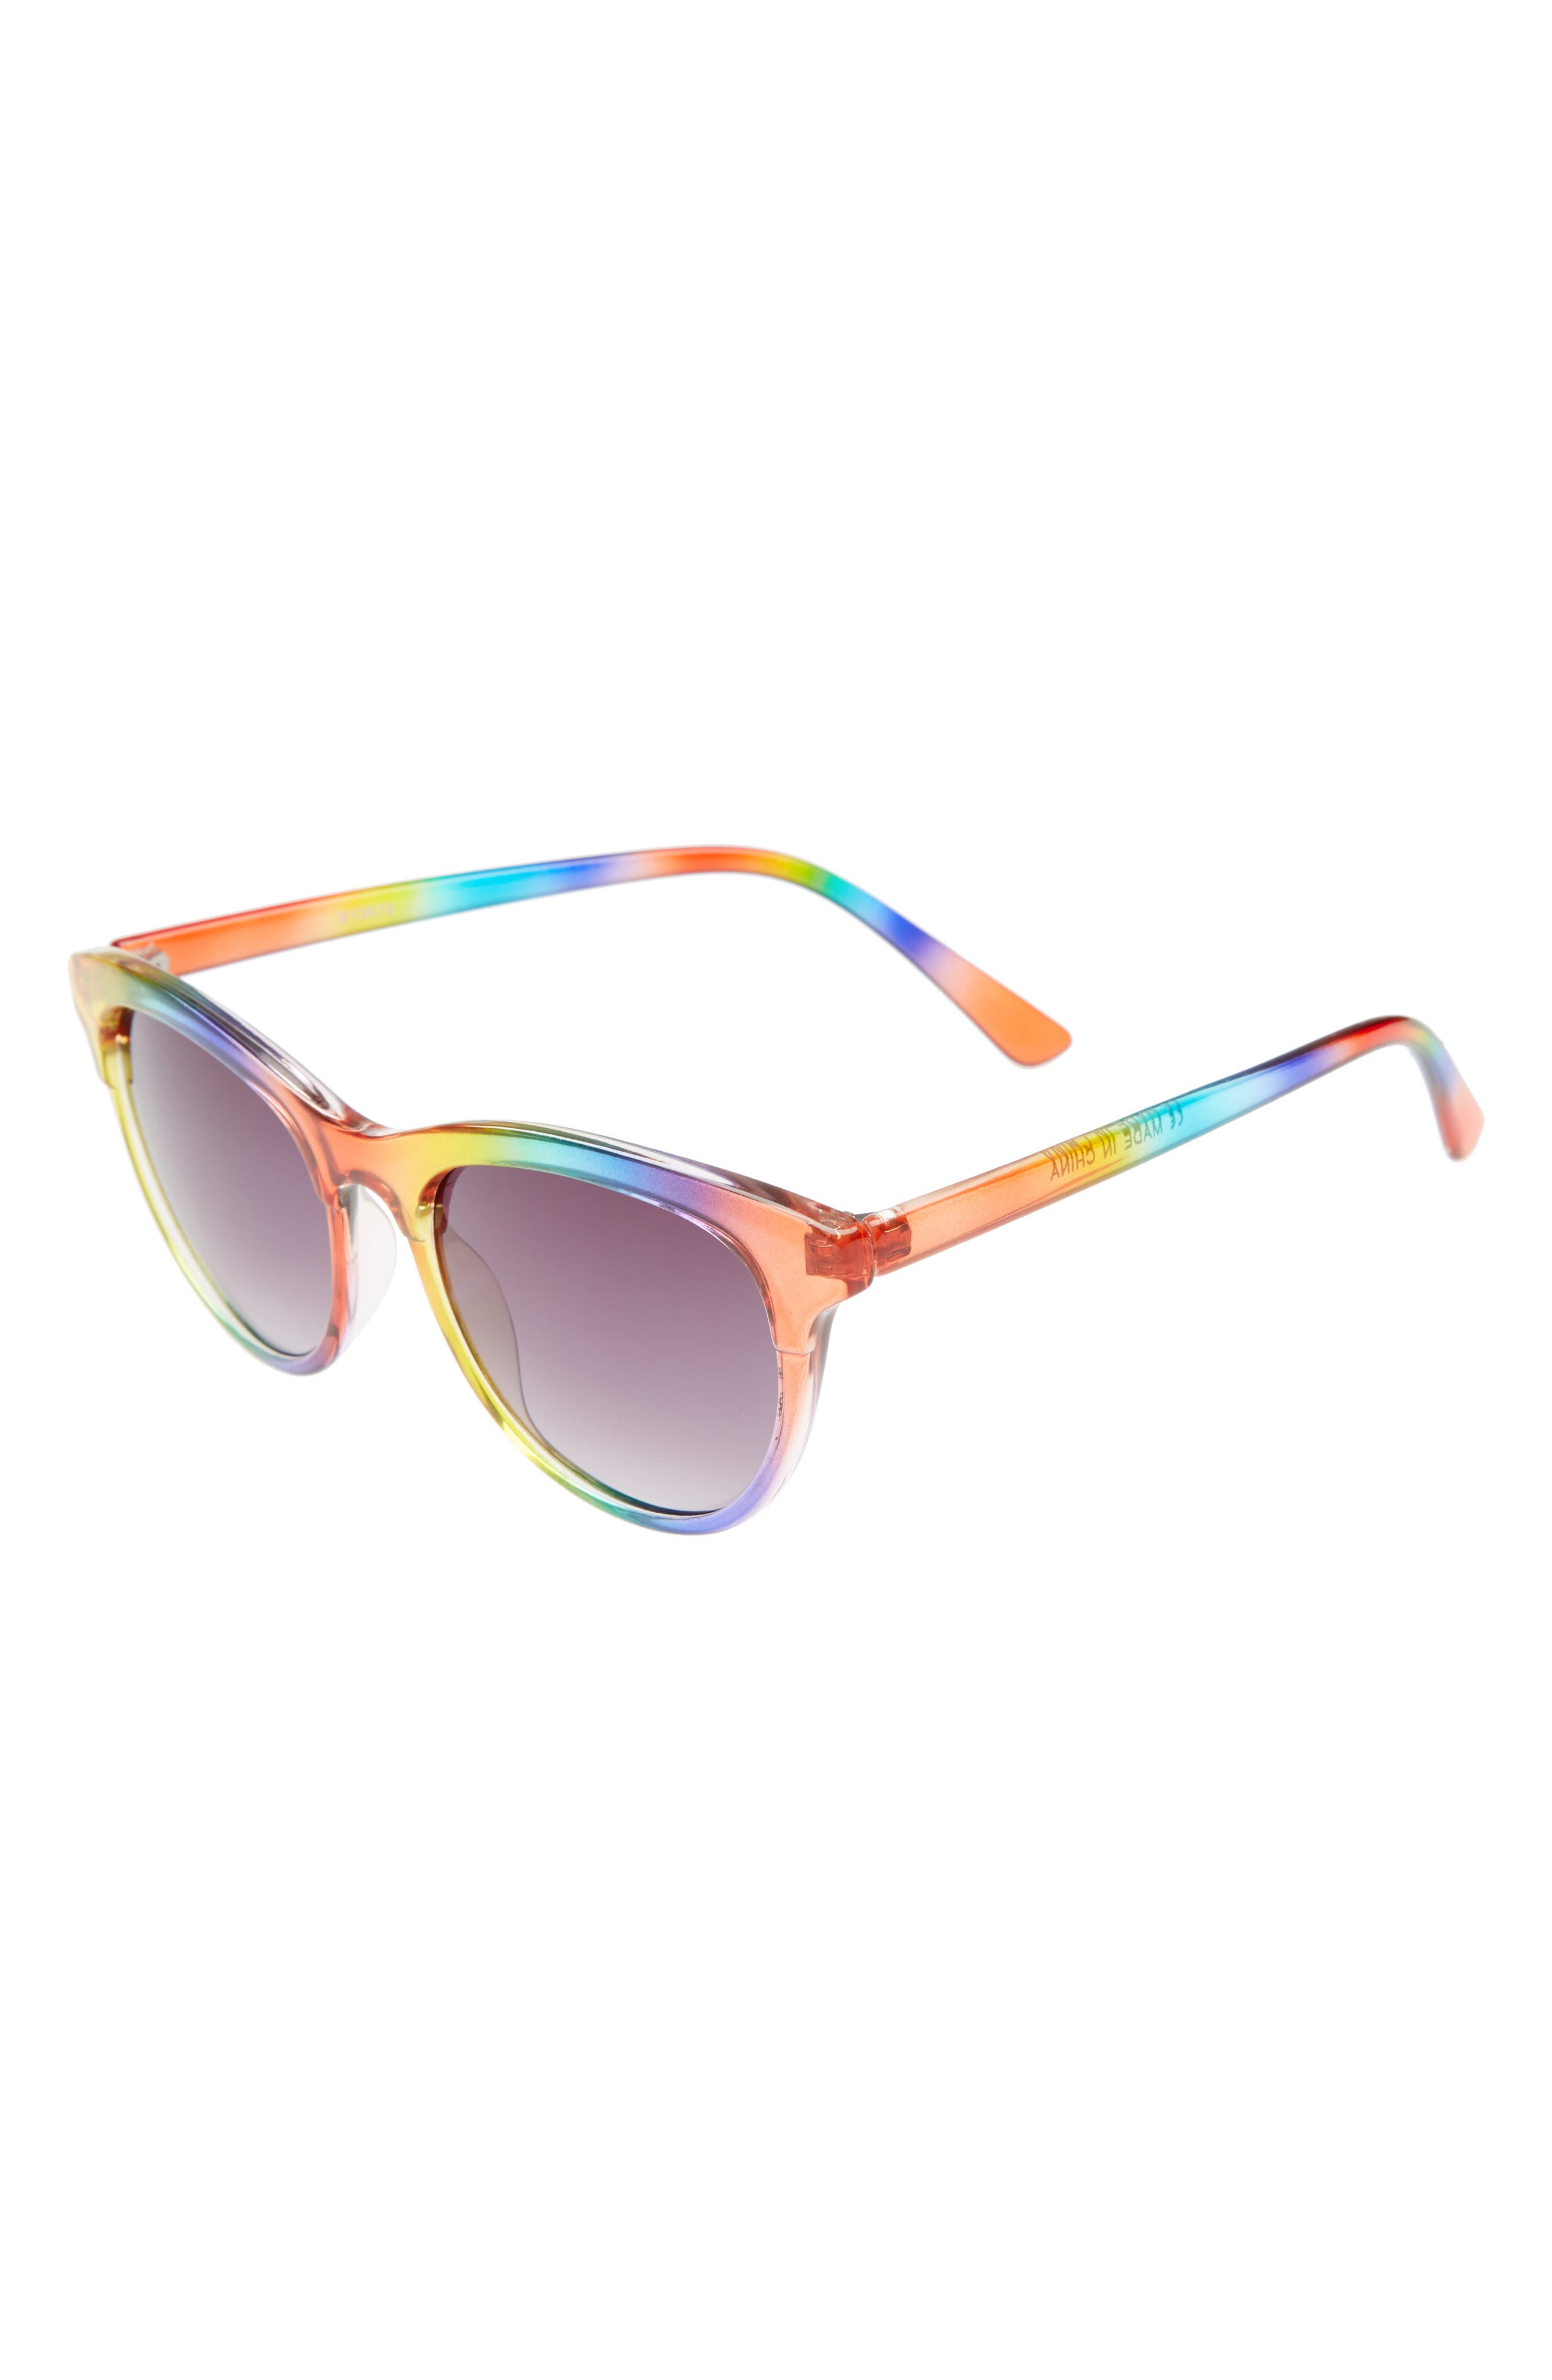 Starlight Accessories Rainbow Round Sunglasses (Kids)